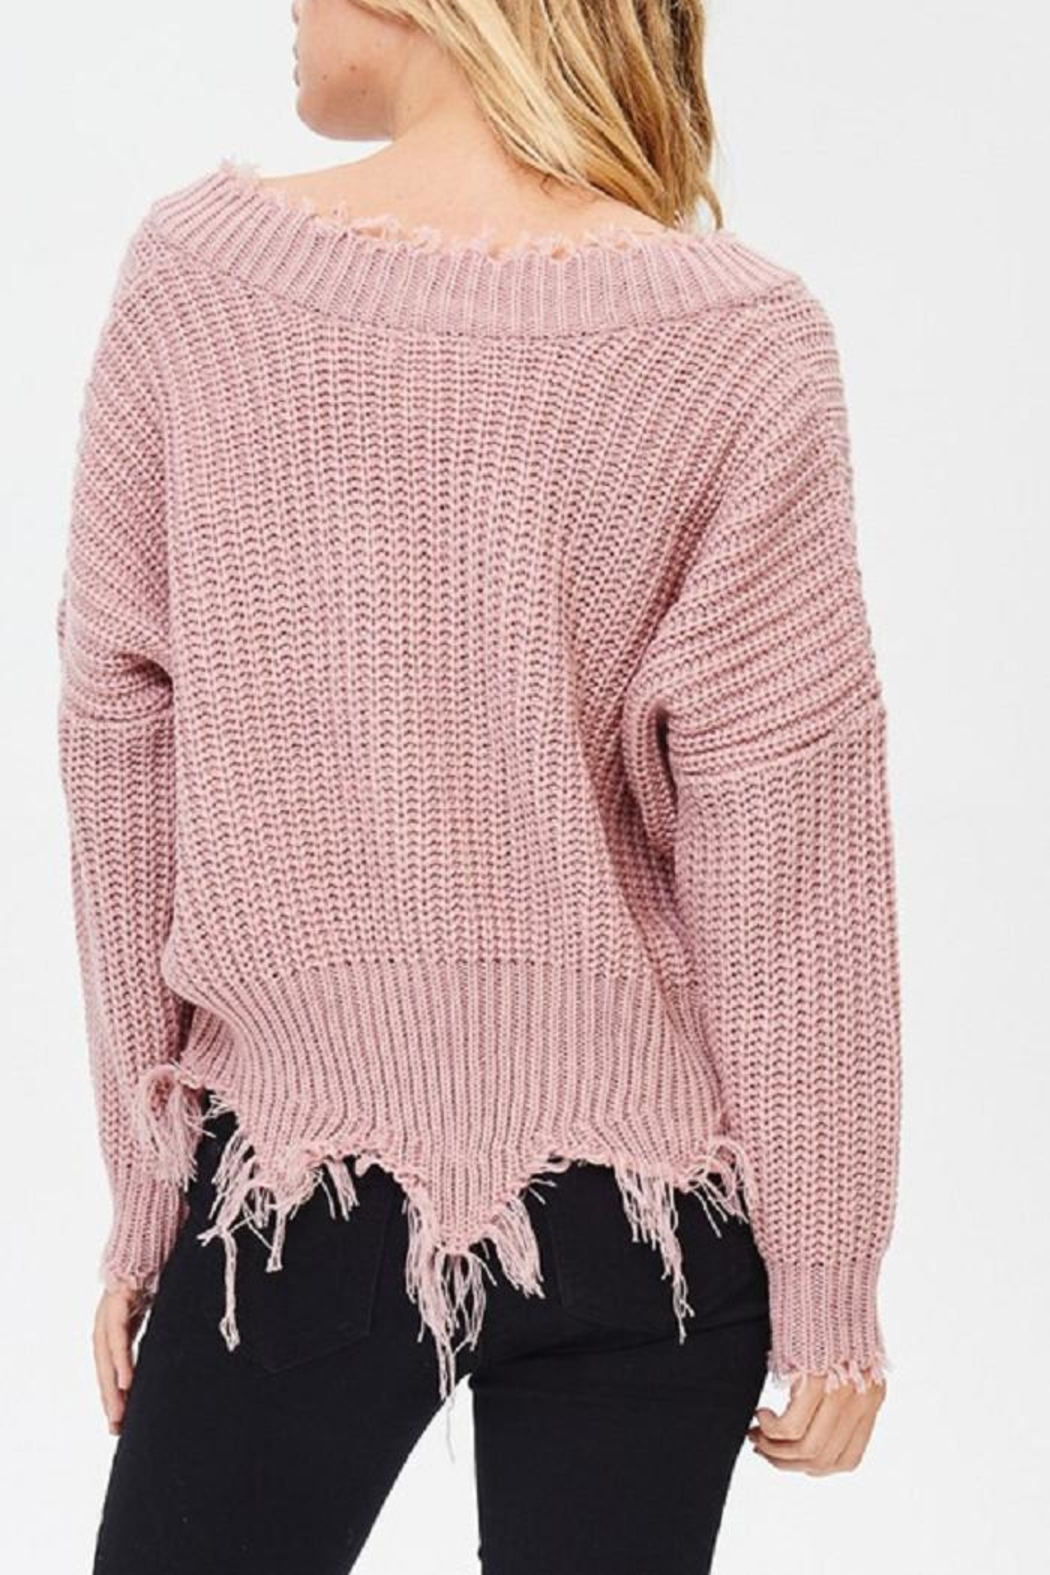 Main Strip Frayed V Neck Sweater - Front Full Image